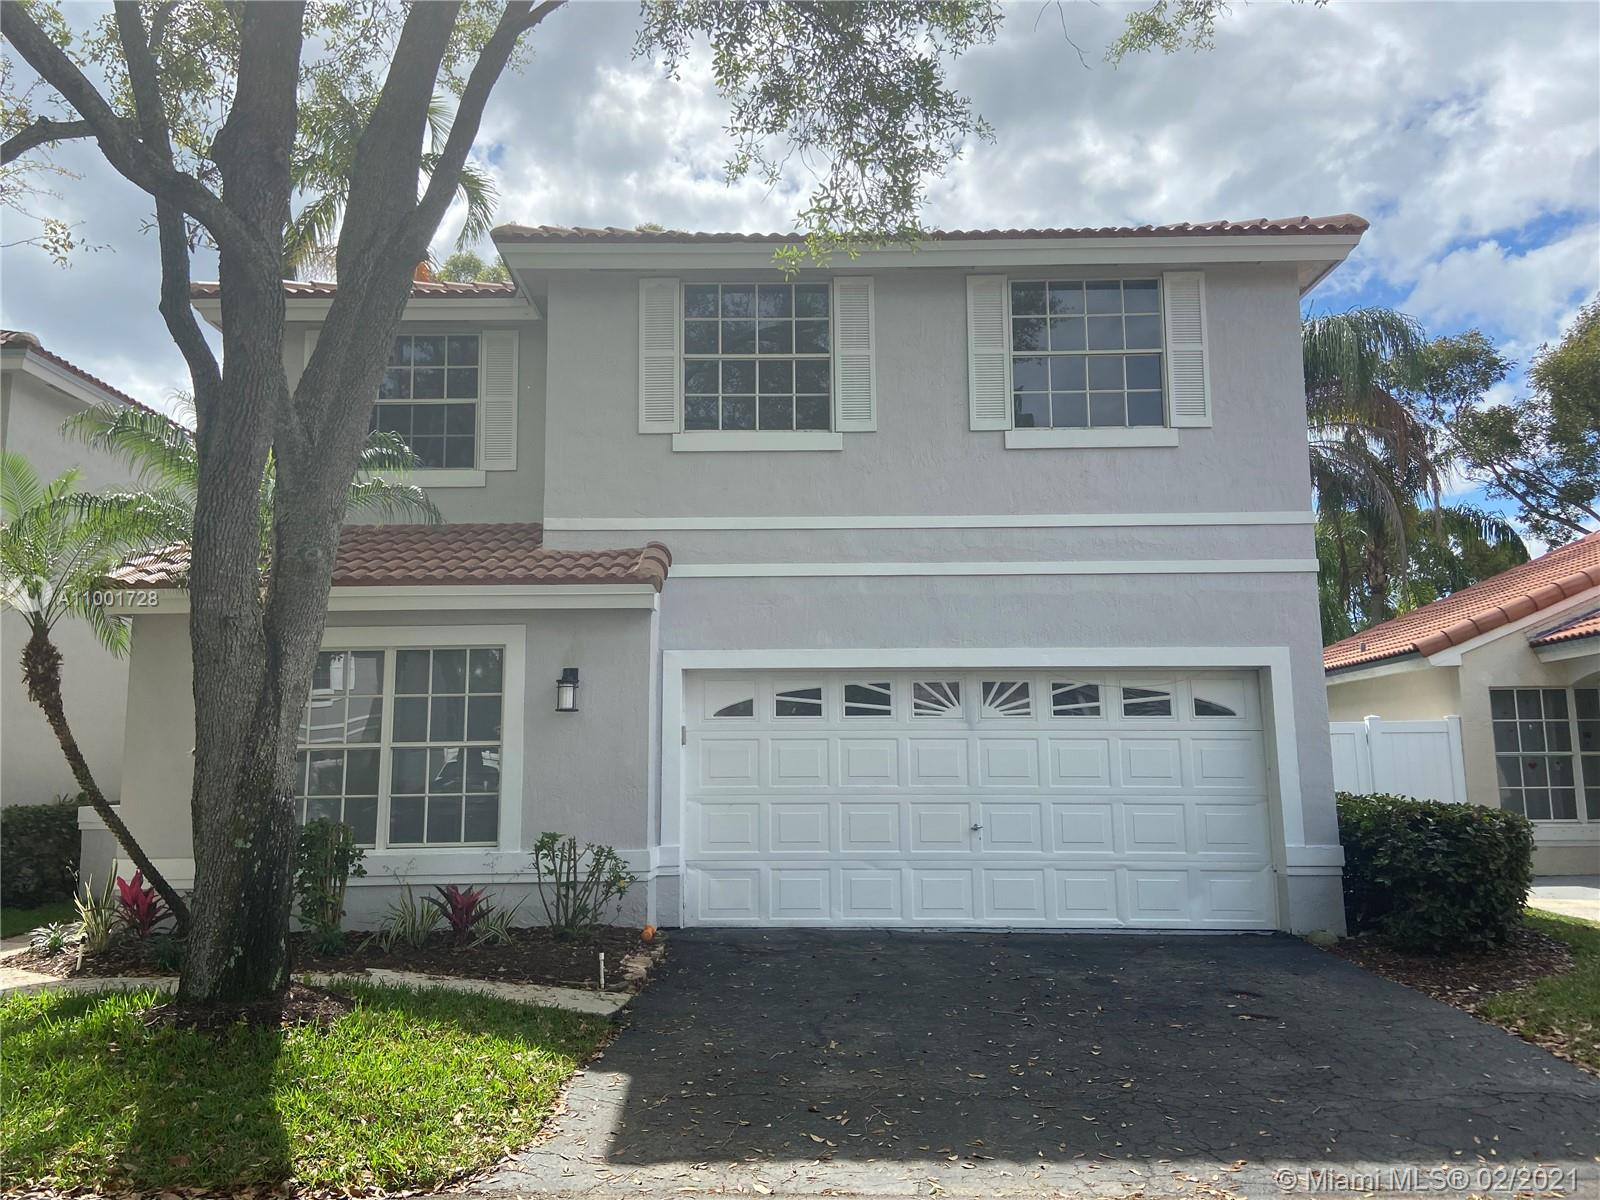 BRAND NEW AND MODERN HOUSE!!!! NEW KITCHEN , NEW AND BRIGHT FLOORING, NEW AND LUXURY BATHROOMS, NEW ROOF, NEW APPLIANCES, NEW PLUMBING. PRESTIGIOUS COMMUNITY OF EMERALD ISLES AND CLOSED TO SHOPPING AND DINING. PEACEFUL 24-HR GATED COMMUNITY, WESTON, US SAFEST CITY WITH BEST A+ SCHOOLS IN S. FL. ACCESS TO HWY. 